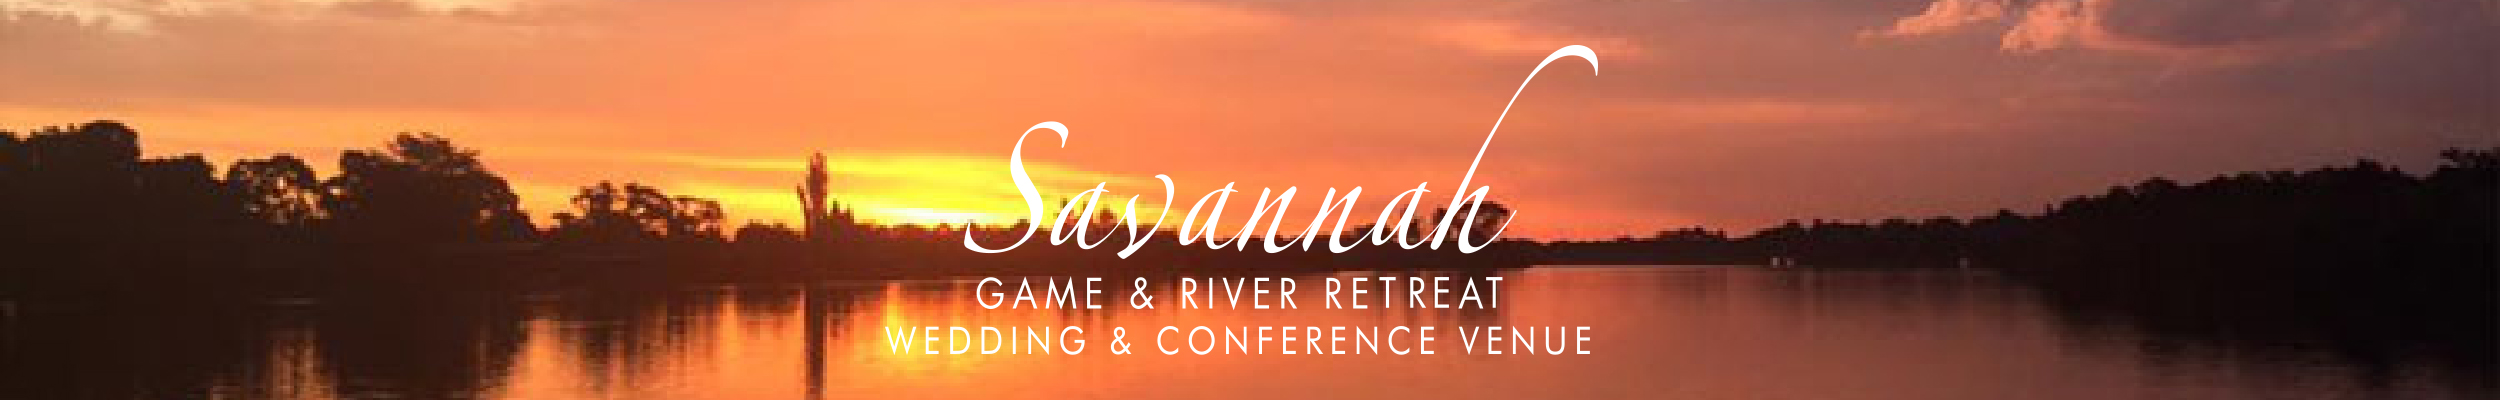 Savannah Game & River Retreat – Parys